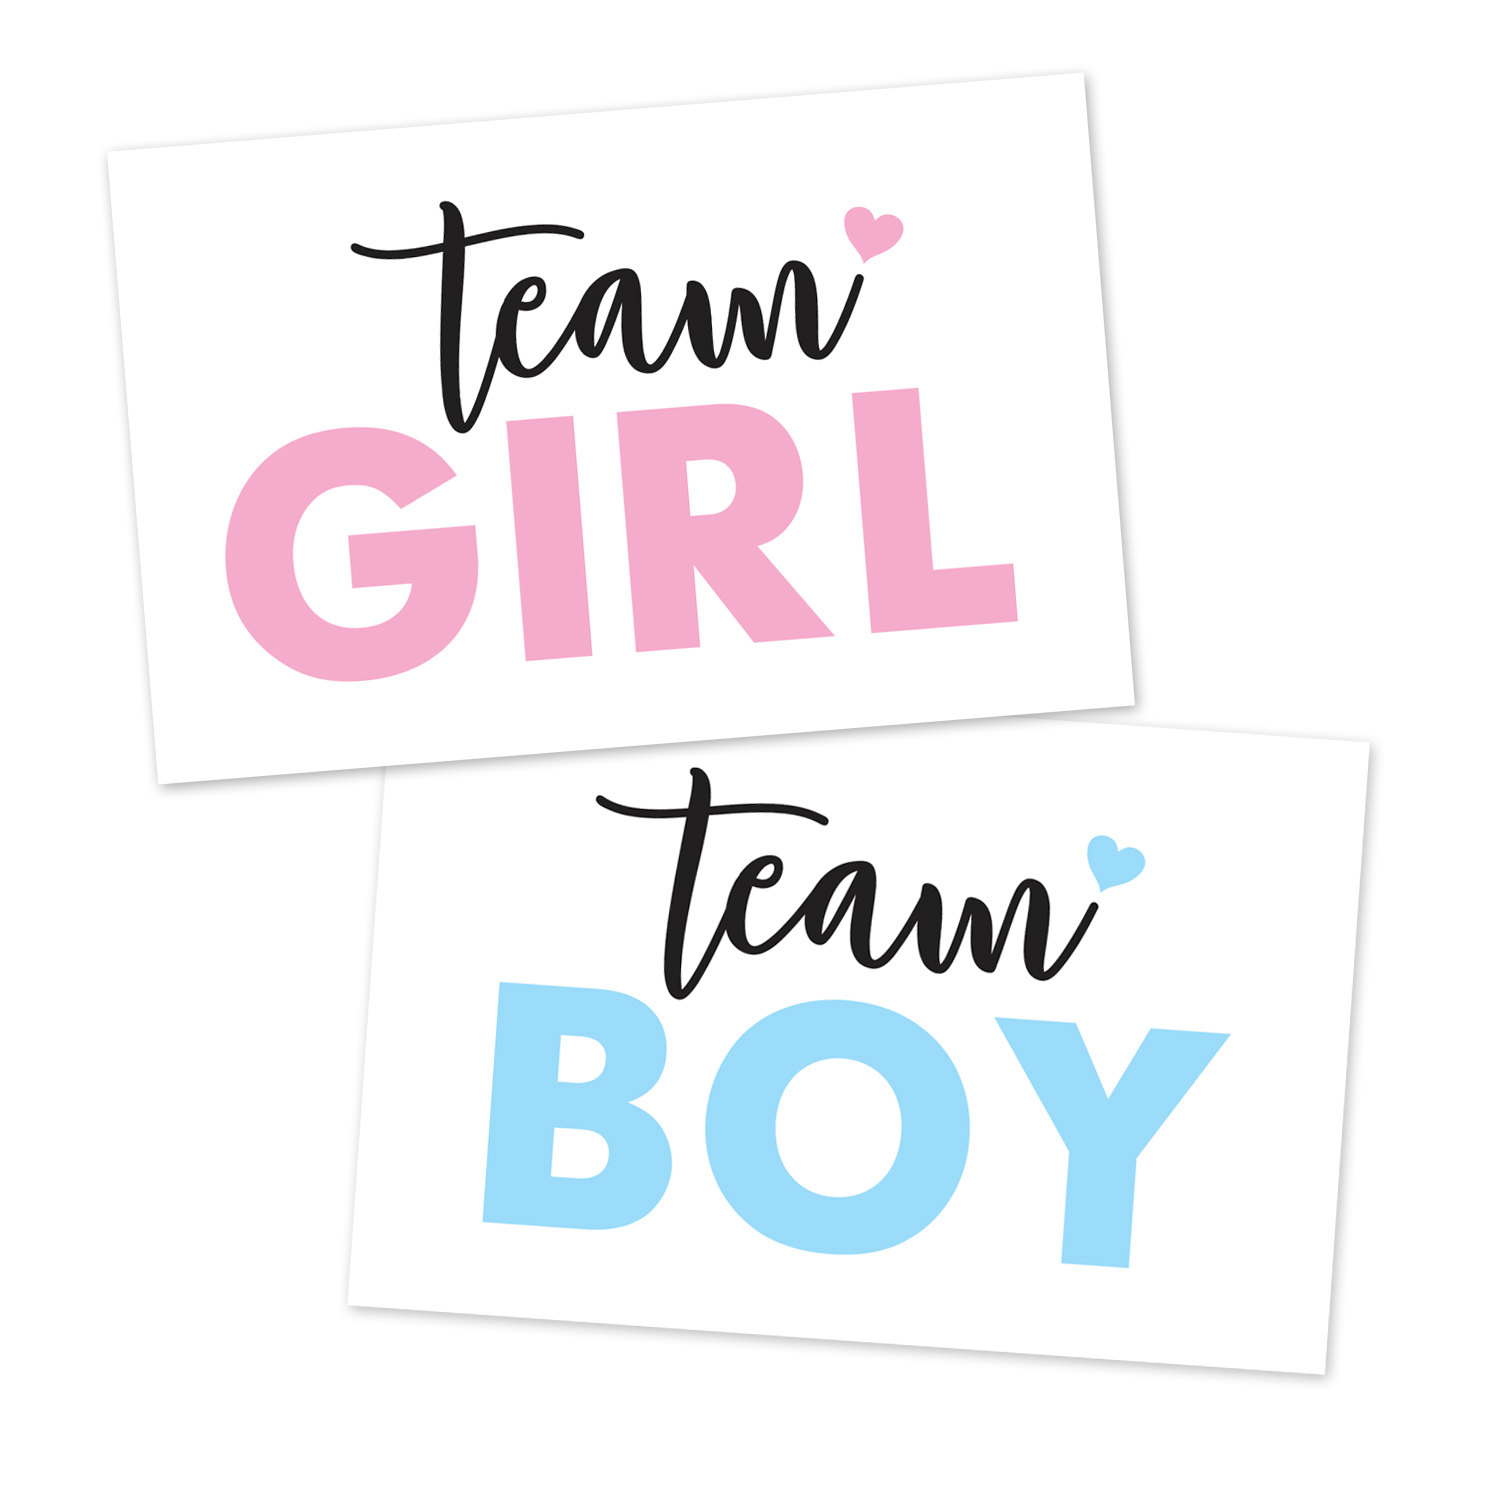 Team boy clipart picture royalty free stock Printable Gender Reveal Team Boy, Team Girl, Signs picture royalty free stock